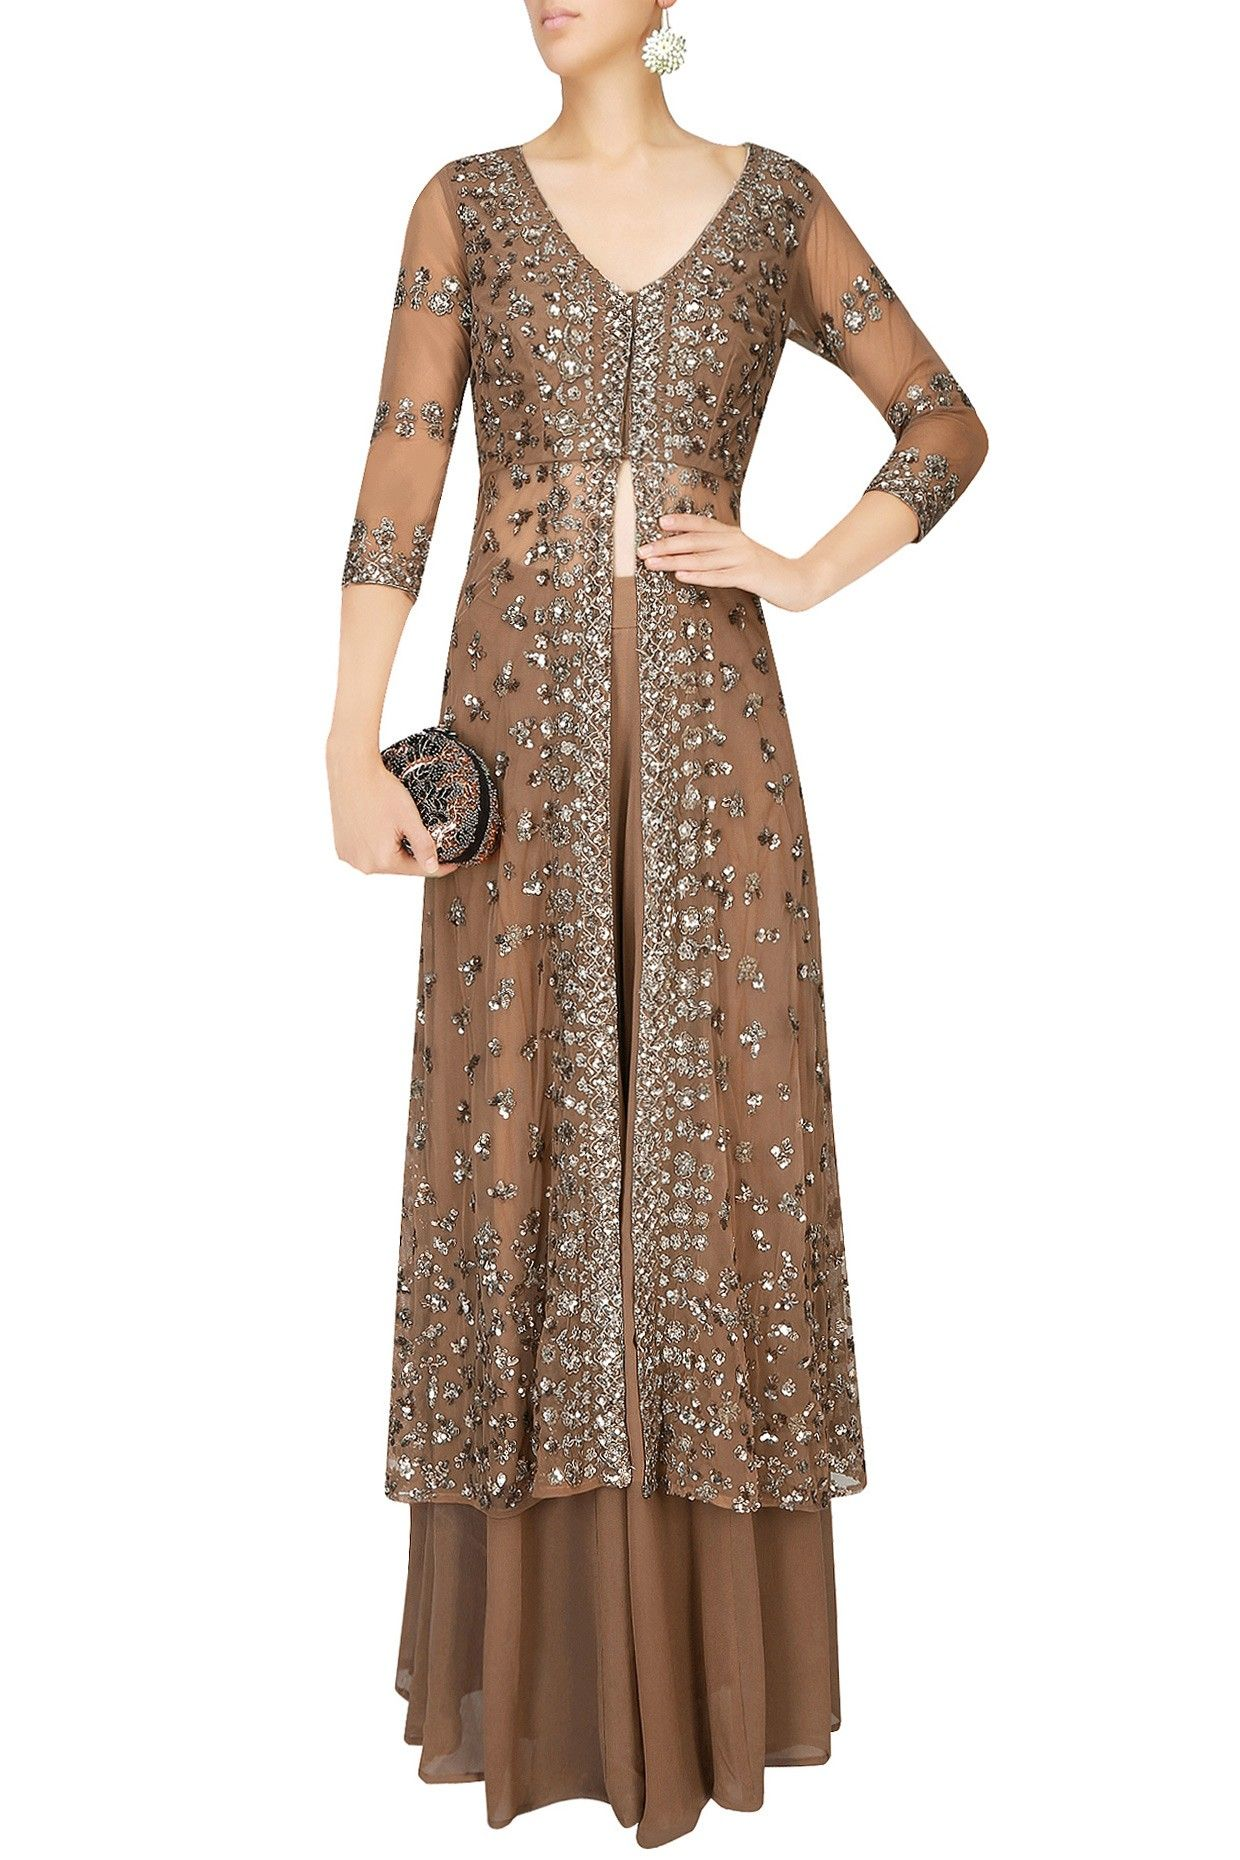 710eb6095b Copper sequins embellished sharara set available only at Pernia s Pop Up  Shop.